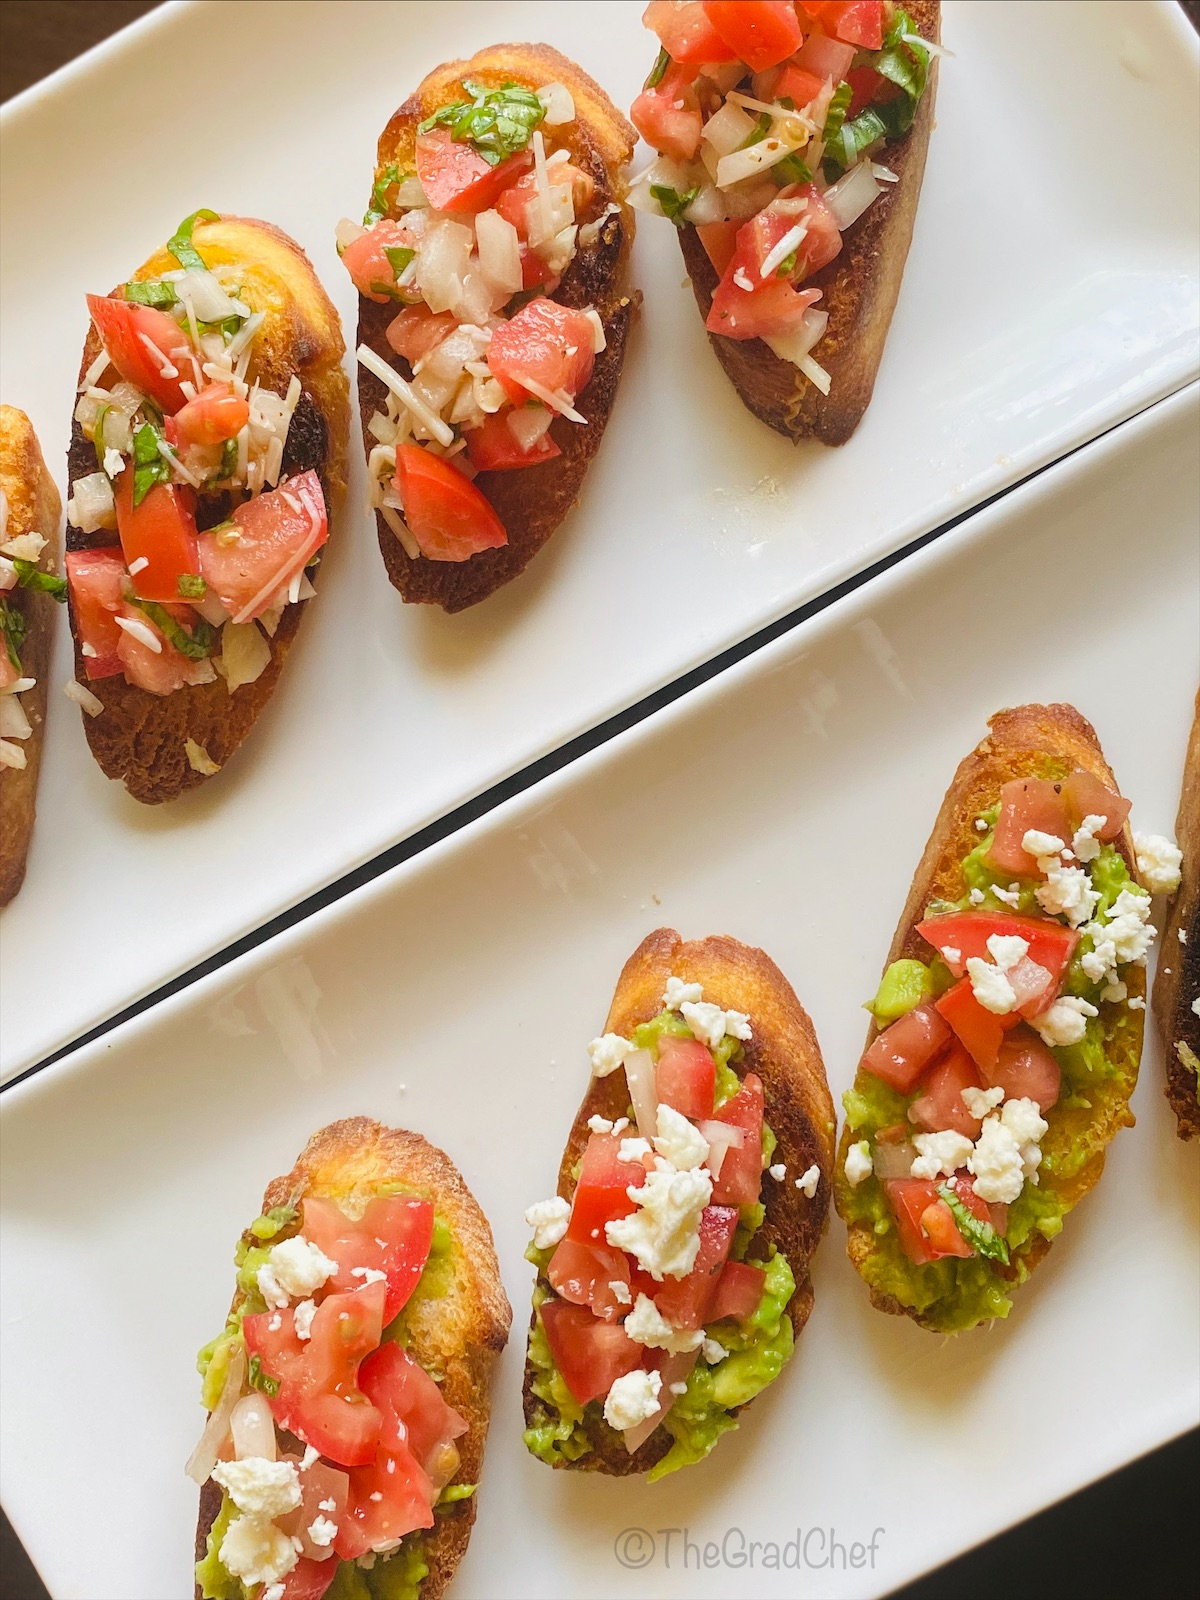 BRUSCHETTA - 2 WAYS